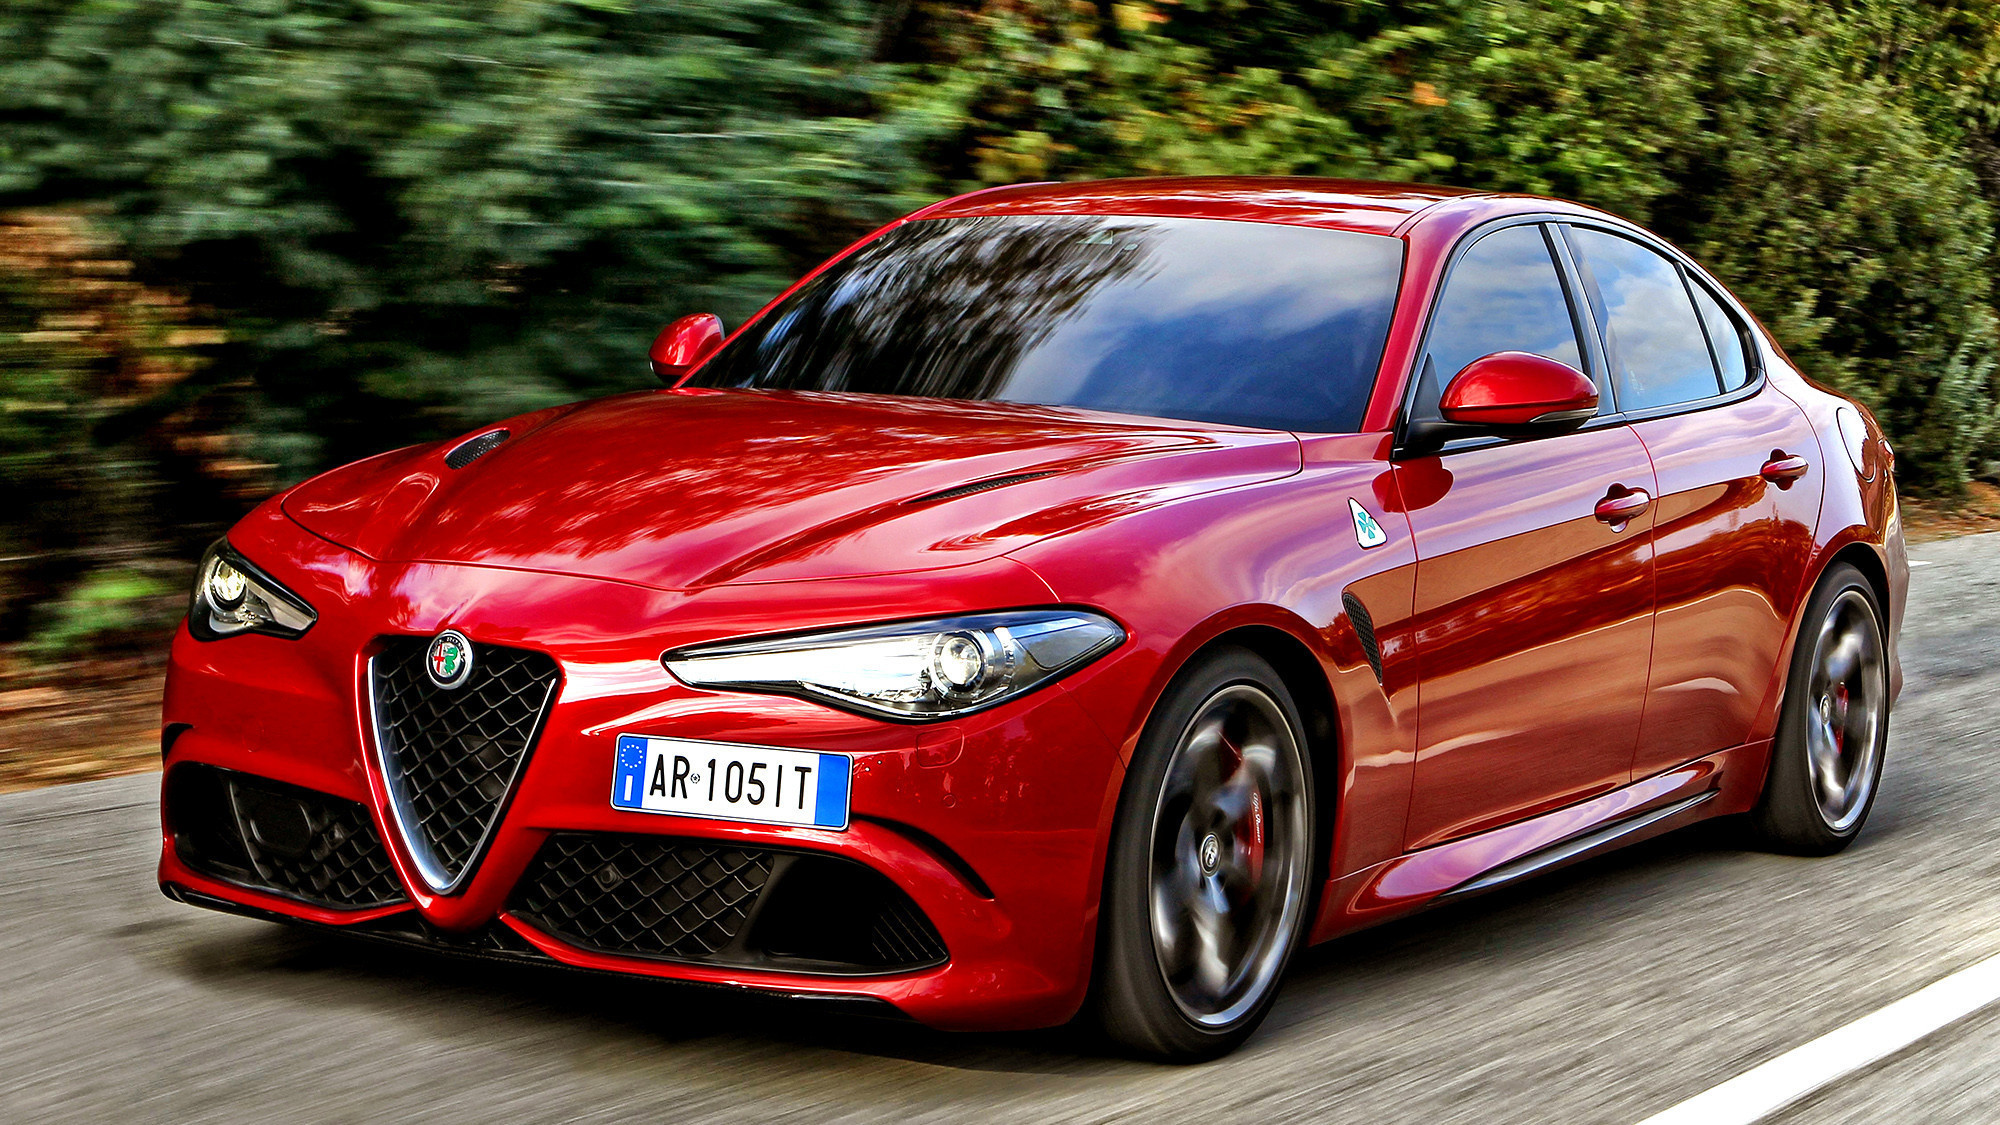 alfa romeo 39 s giulia quadrifoglio is a wolf in sheep 39 s clothing la times. Black Bedroom Furniture Sets. Home Design Ideas